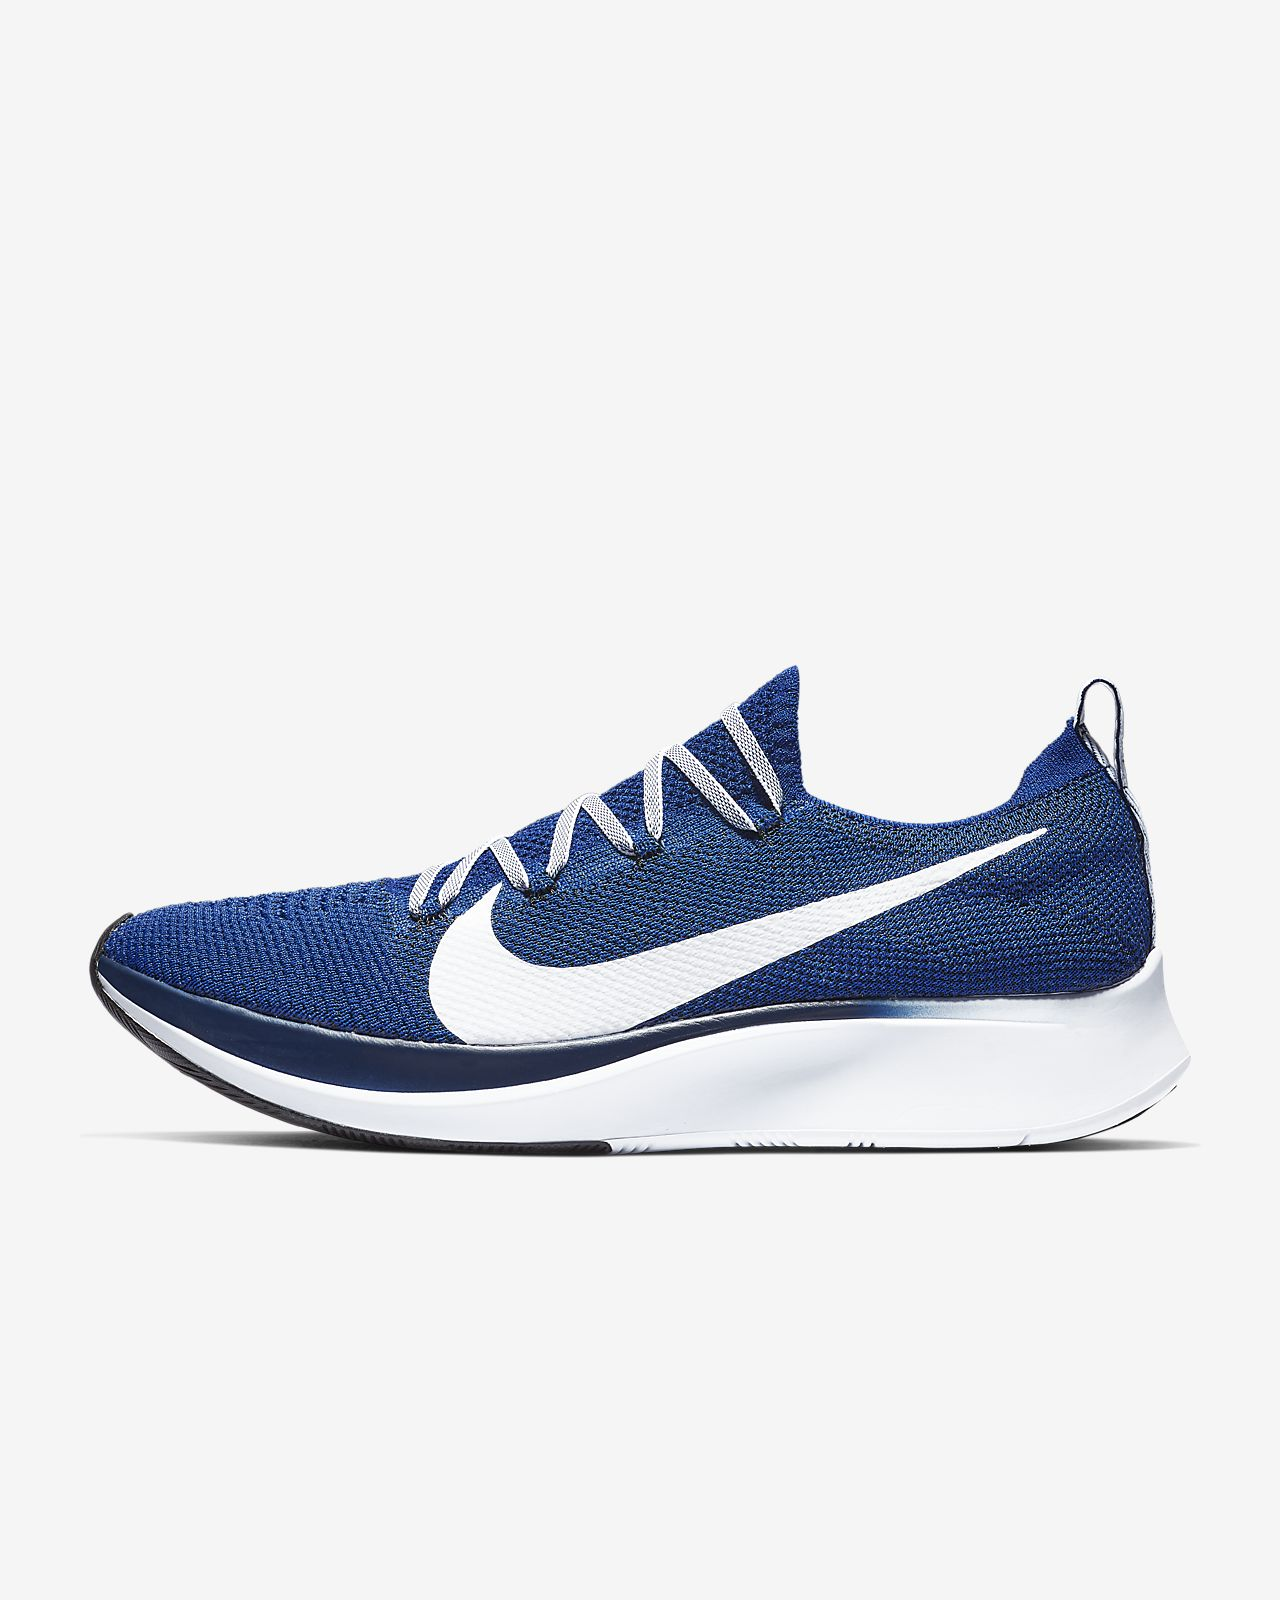 5389a3b46949b Nike Zoom Fly Flyknit Men s Running Shoe. Nike.com IN